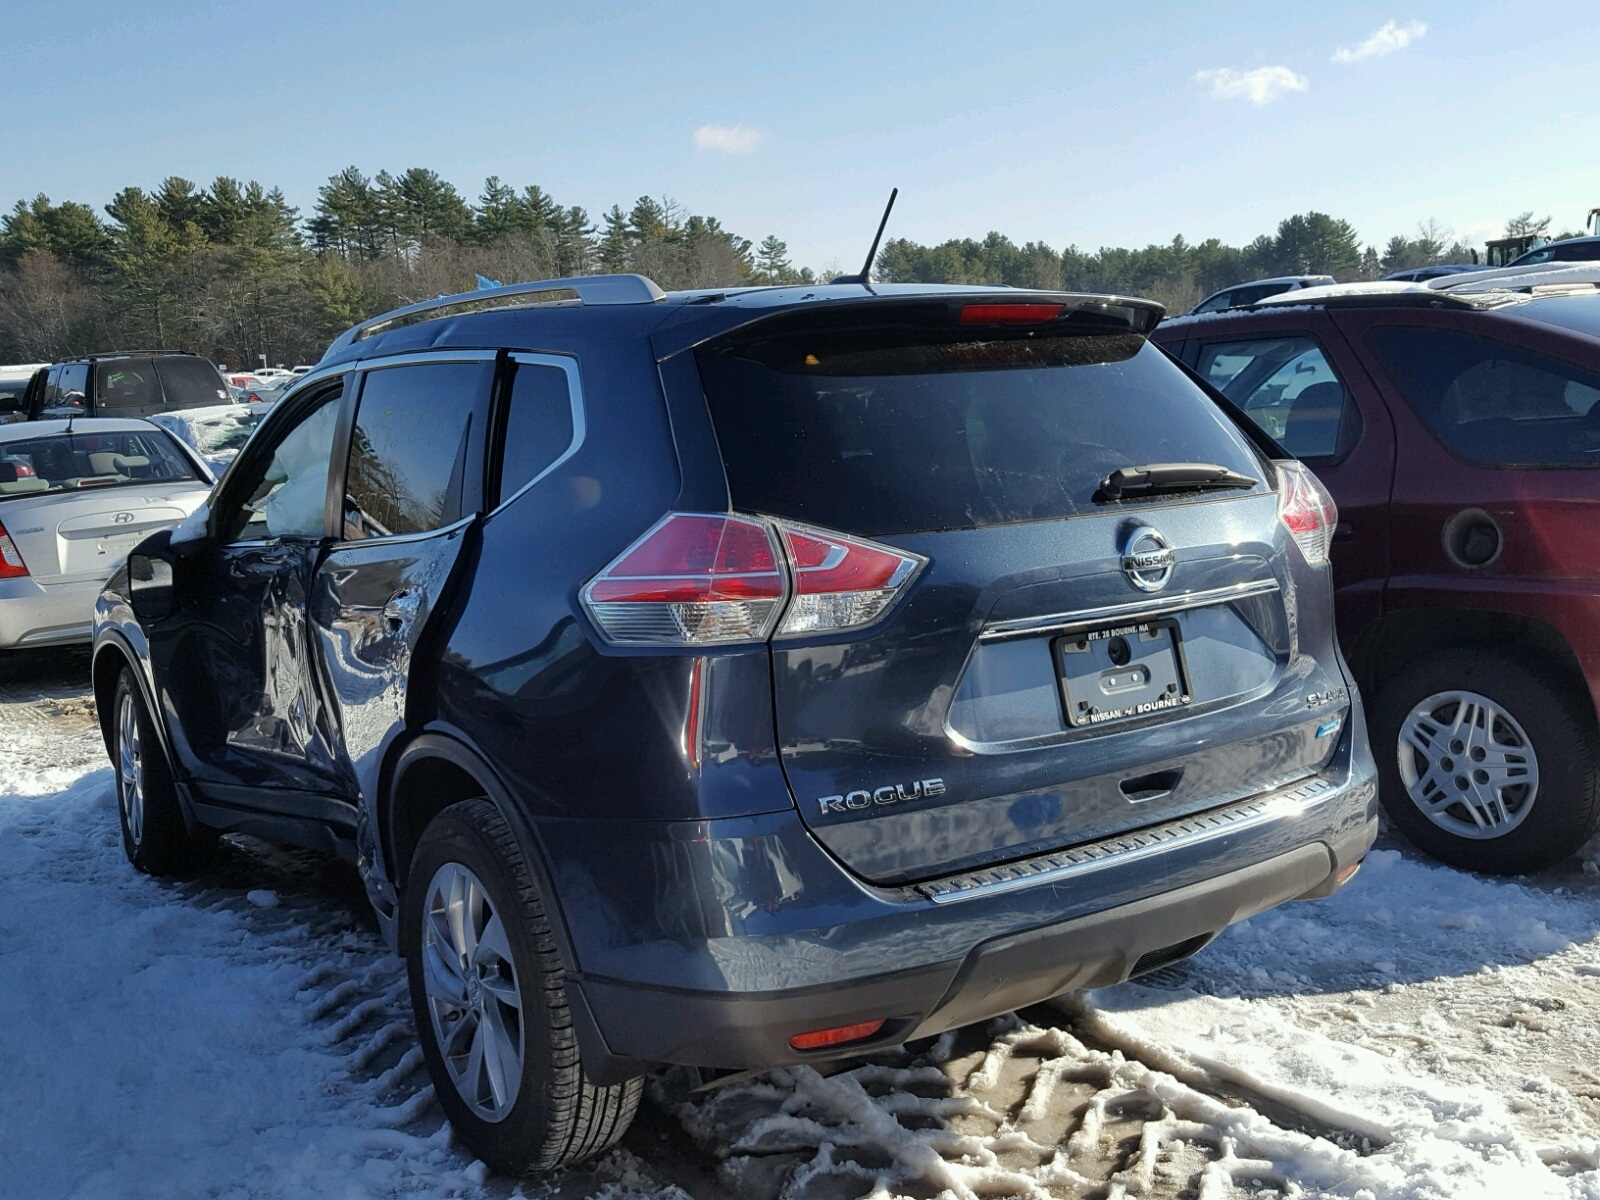 2014 Nissan Rogue S for sale at Copart Mendon MA Lot